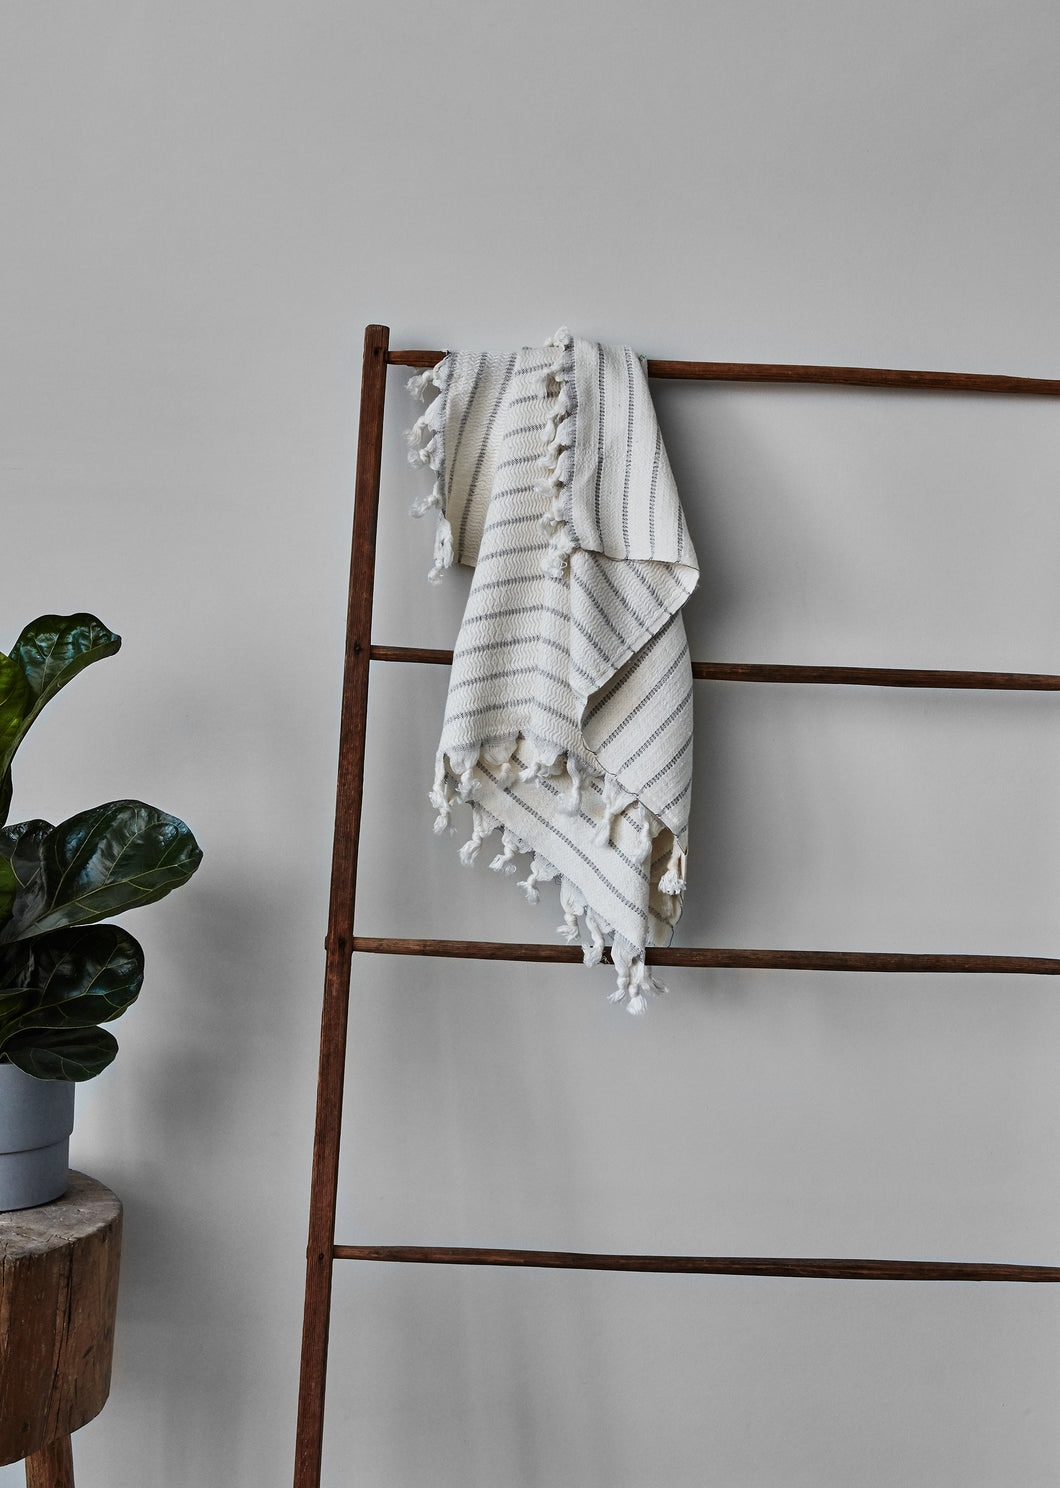 Bulut turkish hand towel